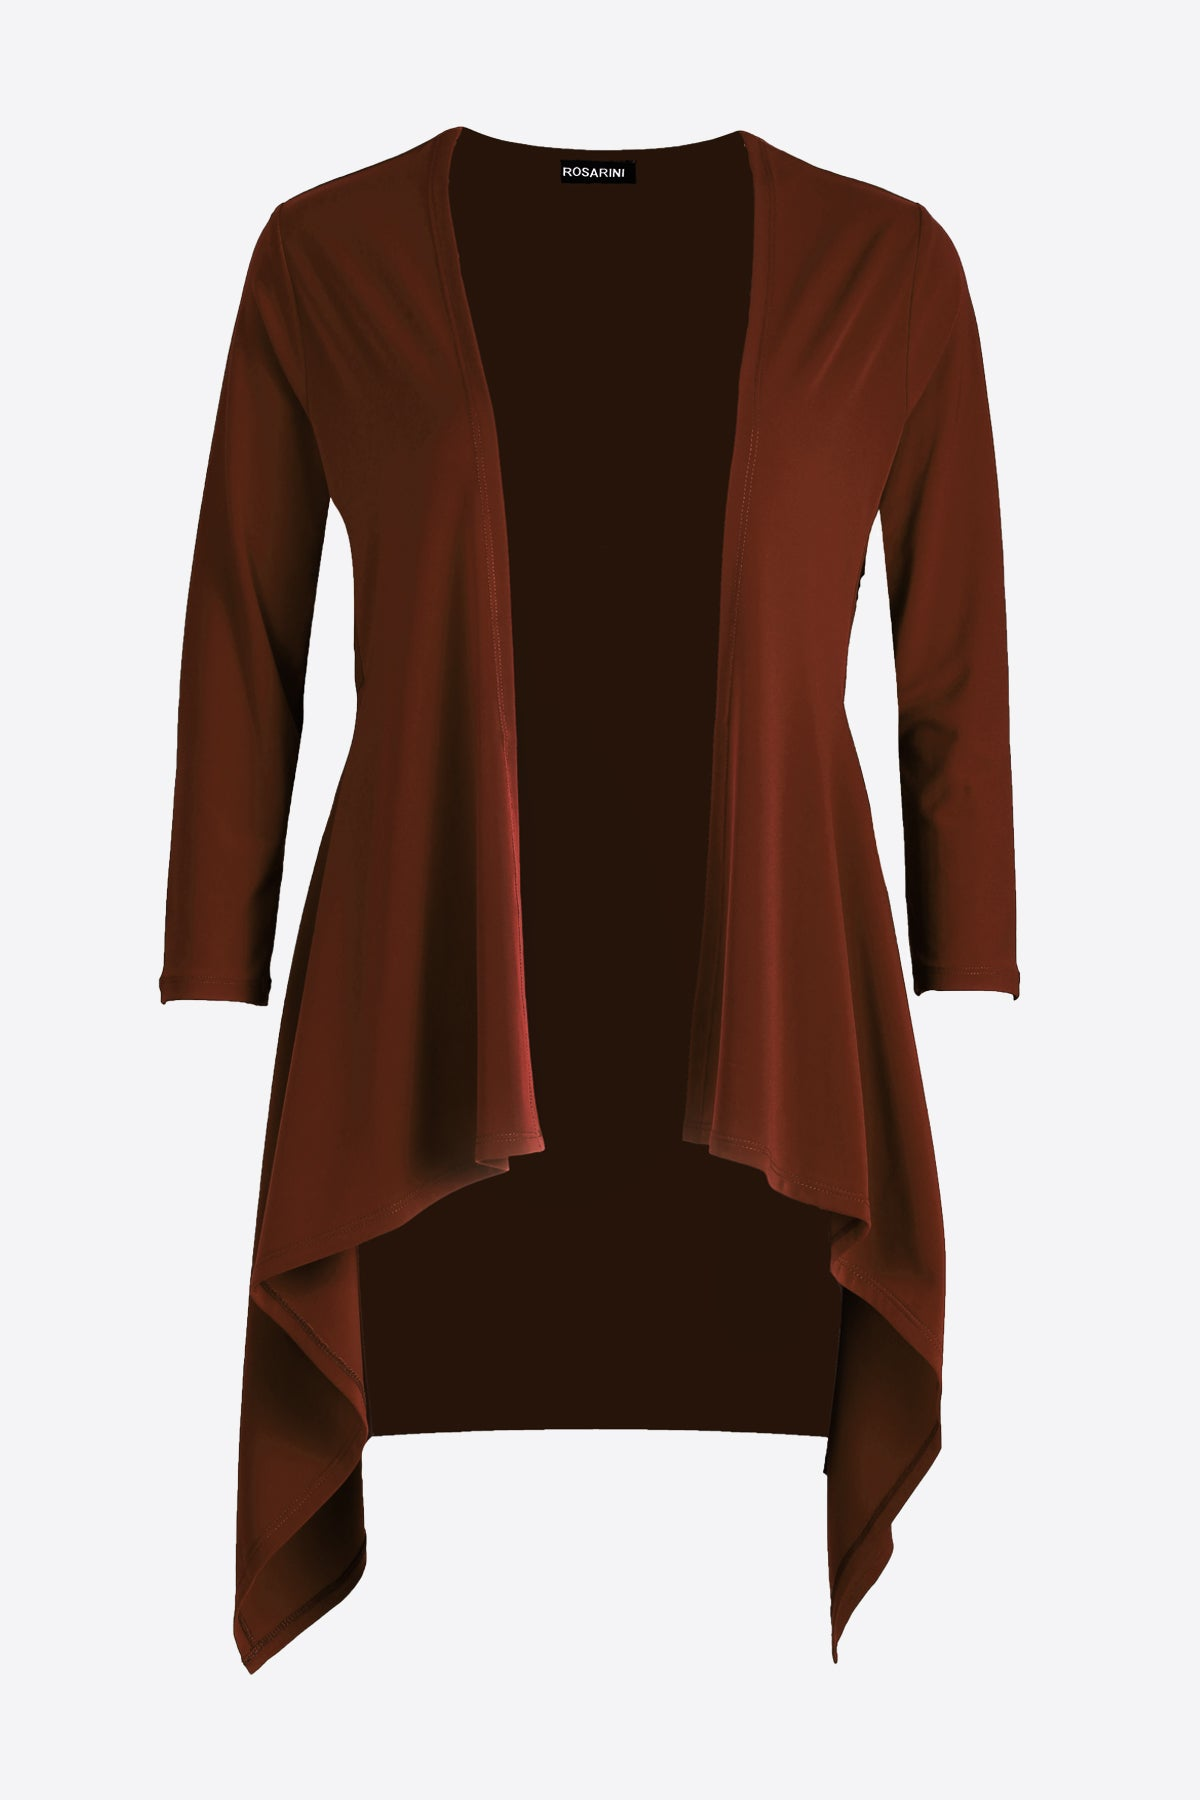 Women's Brown Long Sleeve Contour Cardigan Rosarini